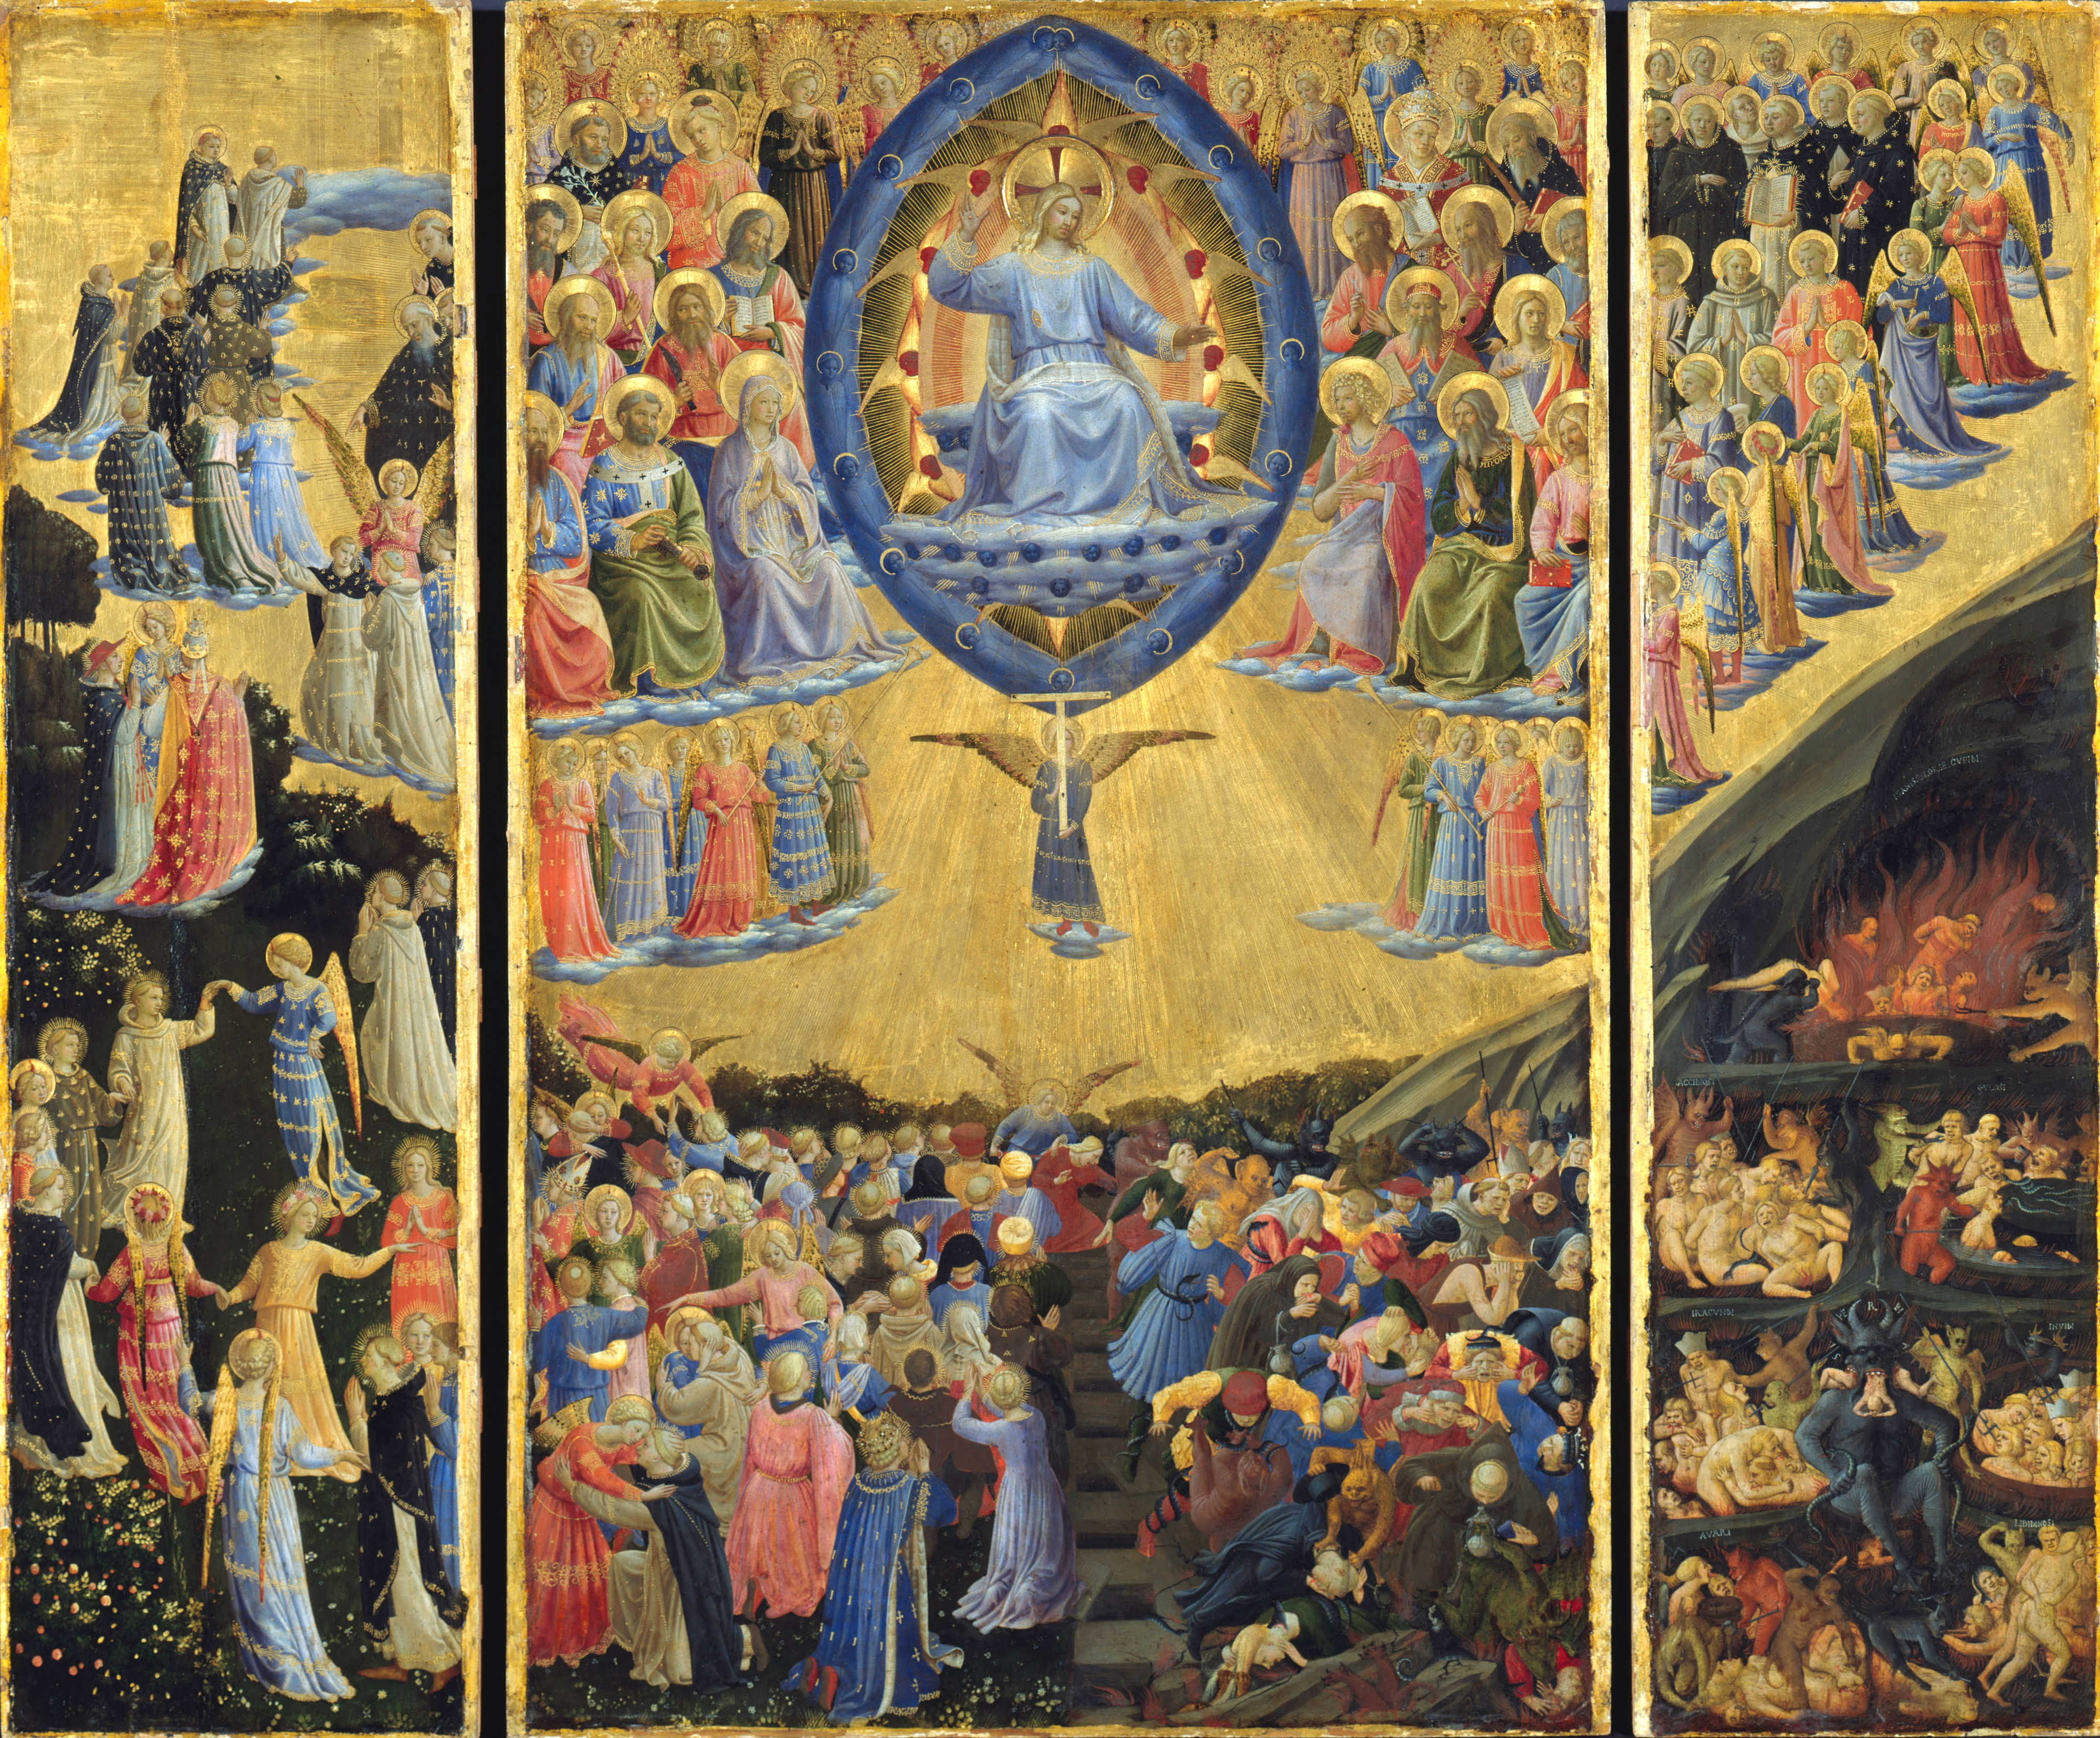 fra_angelico 1435-50 _the_last_judgement_(winged_altar)_-Gemaldegalerie Berlin